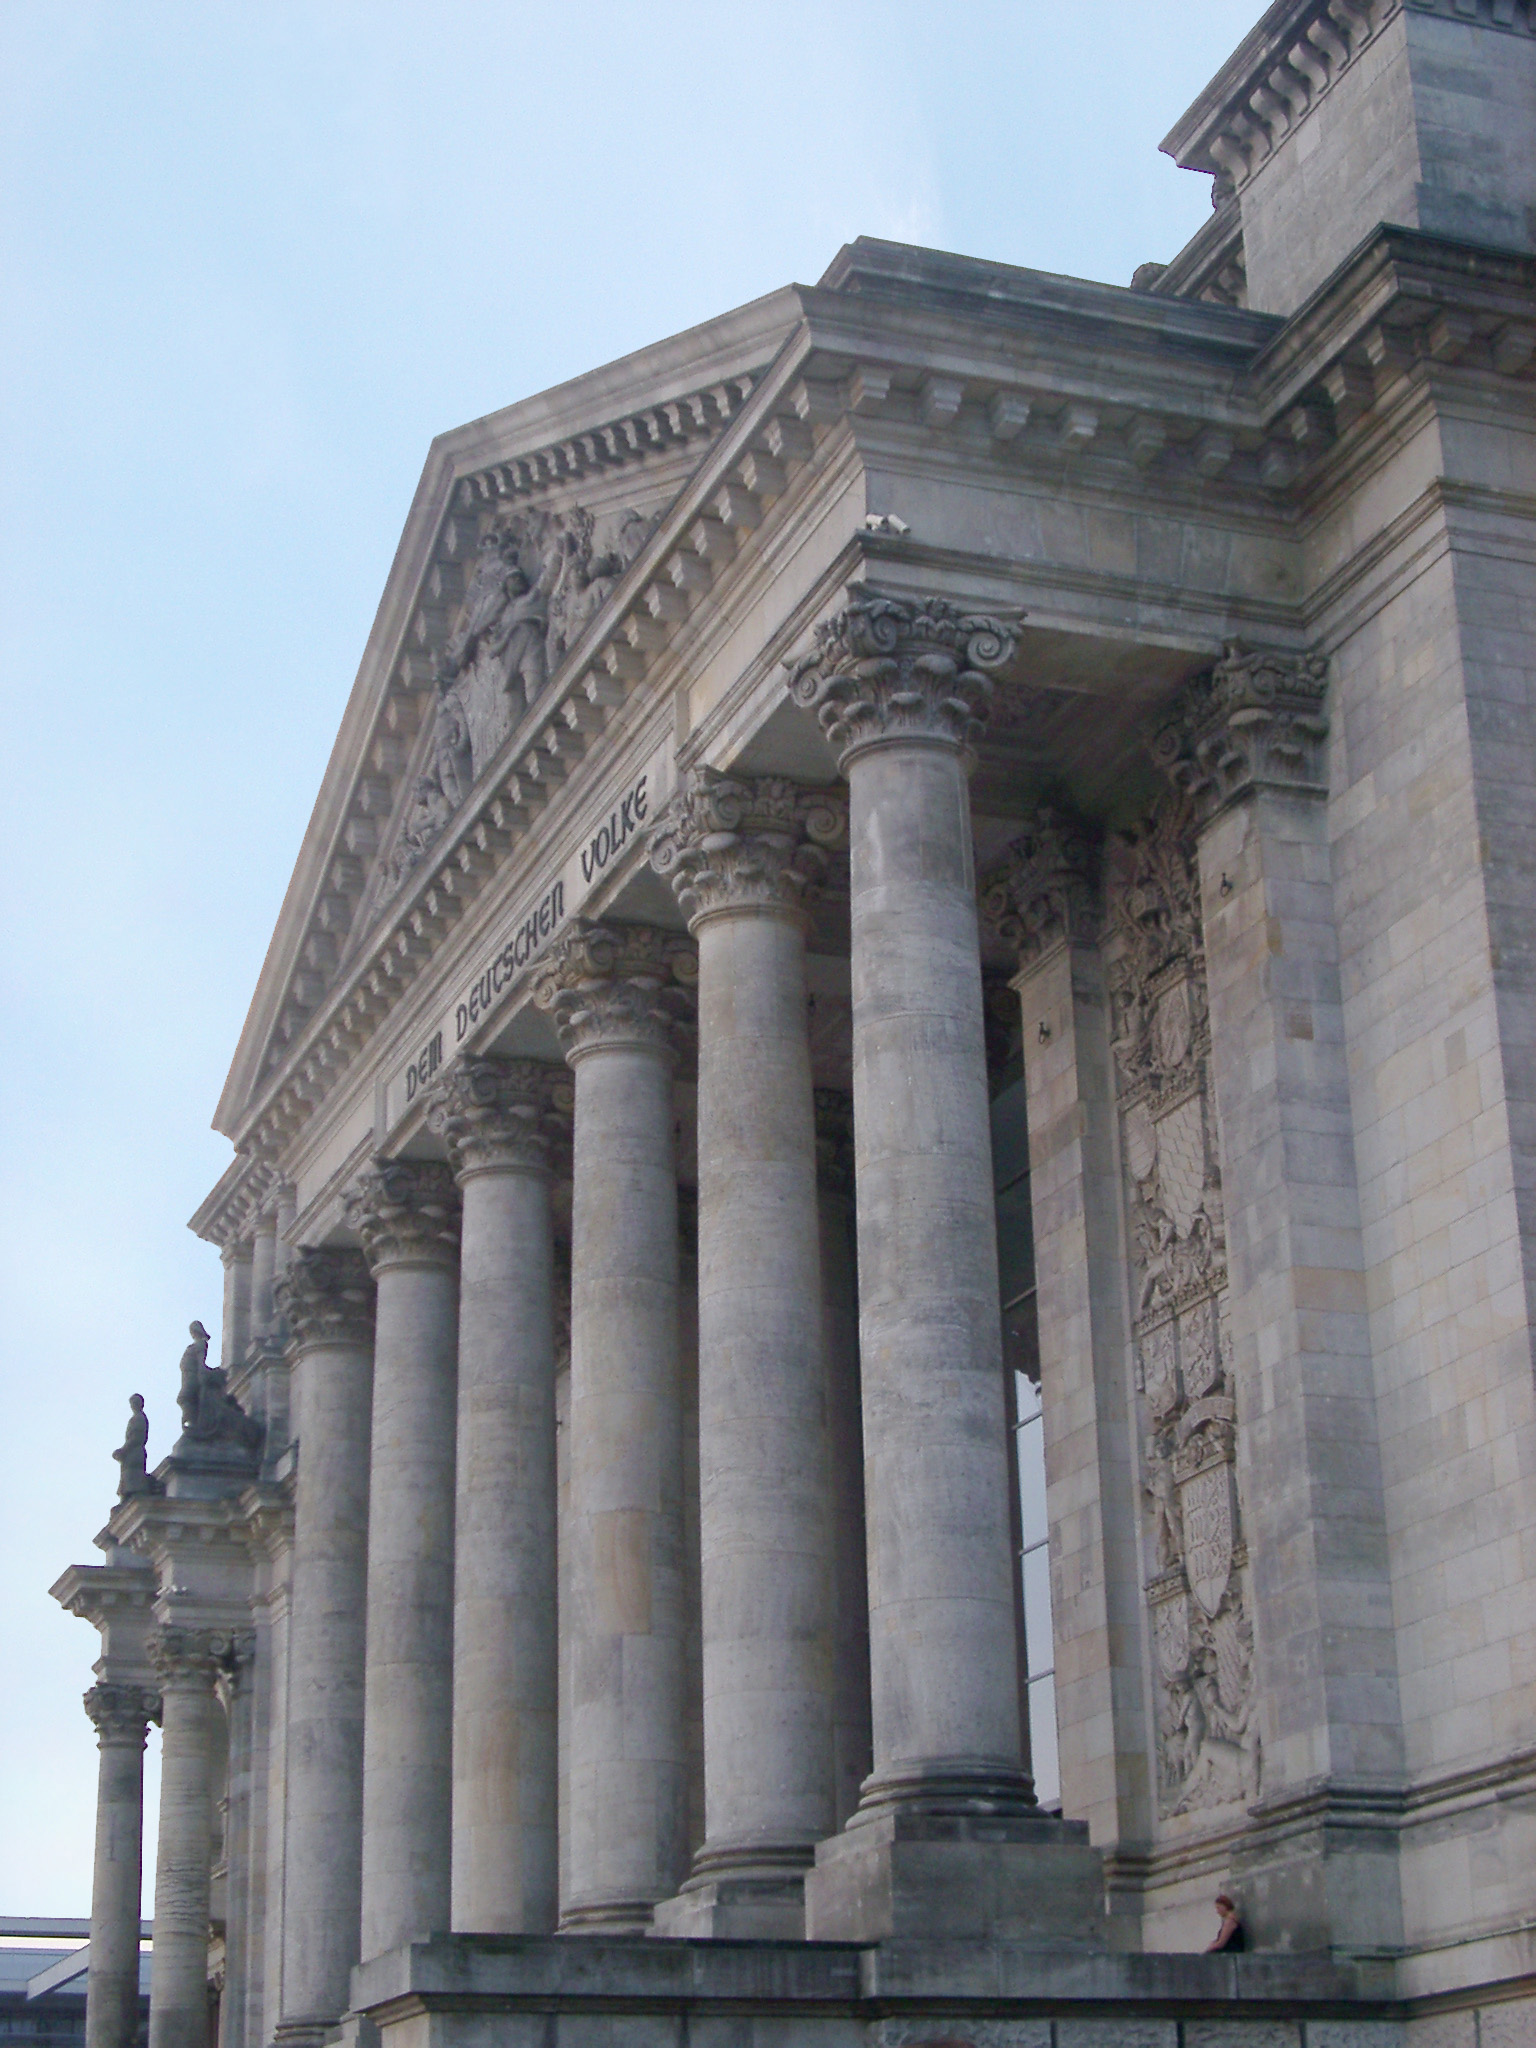 Facade of Reichstag Parliament Building in Berlin, Germany